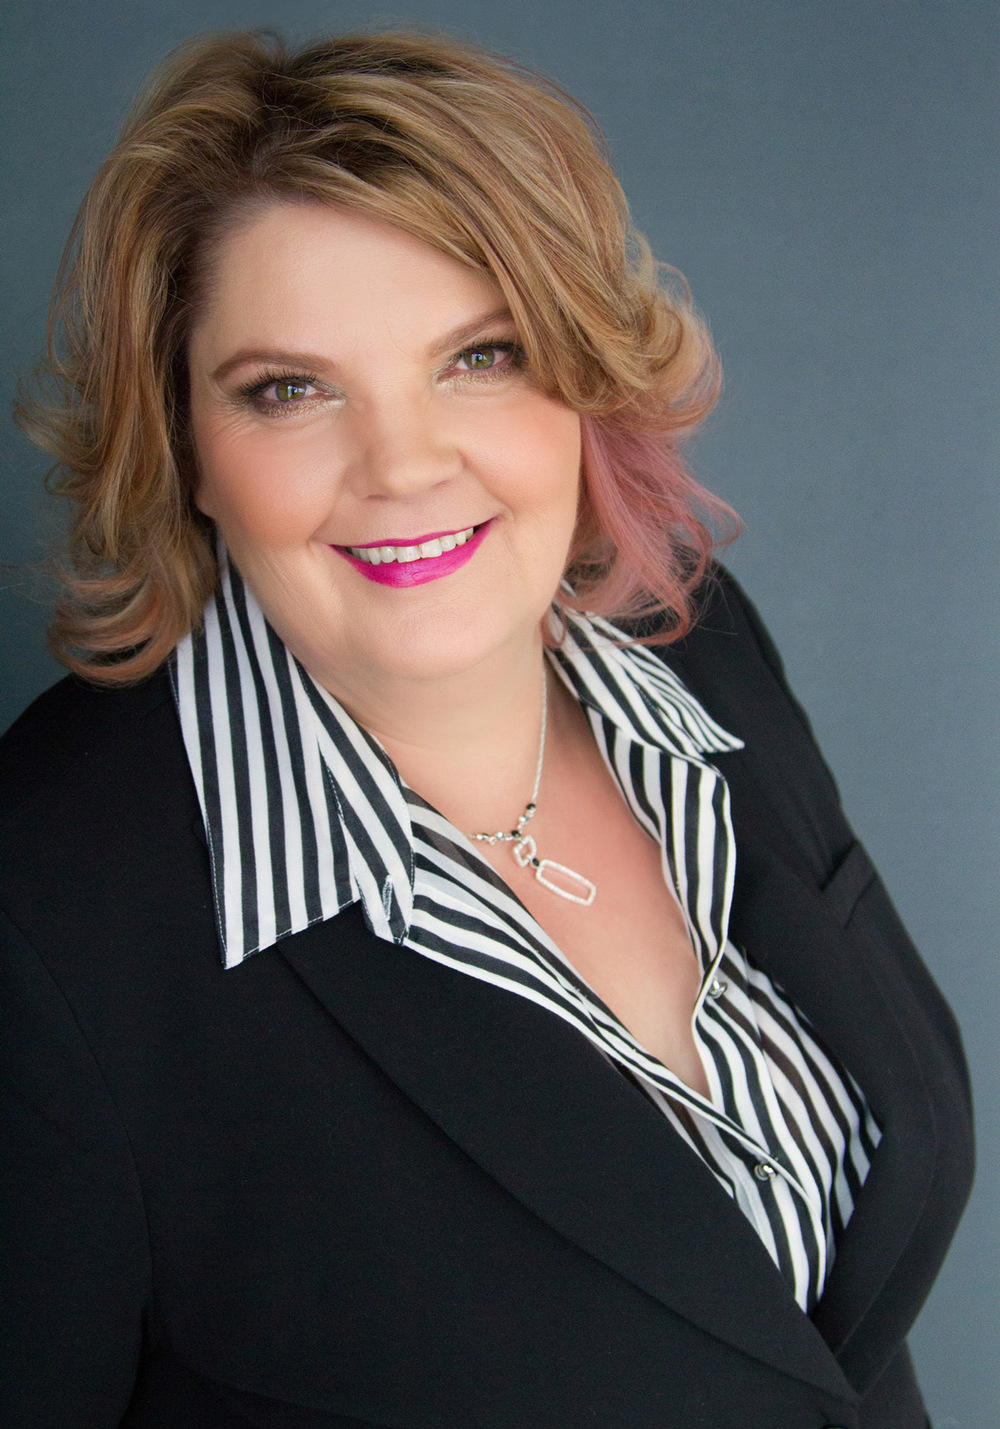 jade thorby photography - crisie corporate